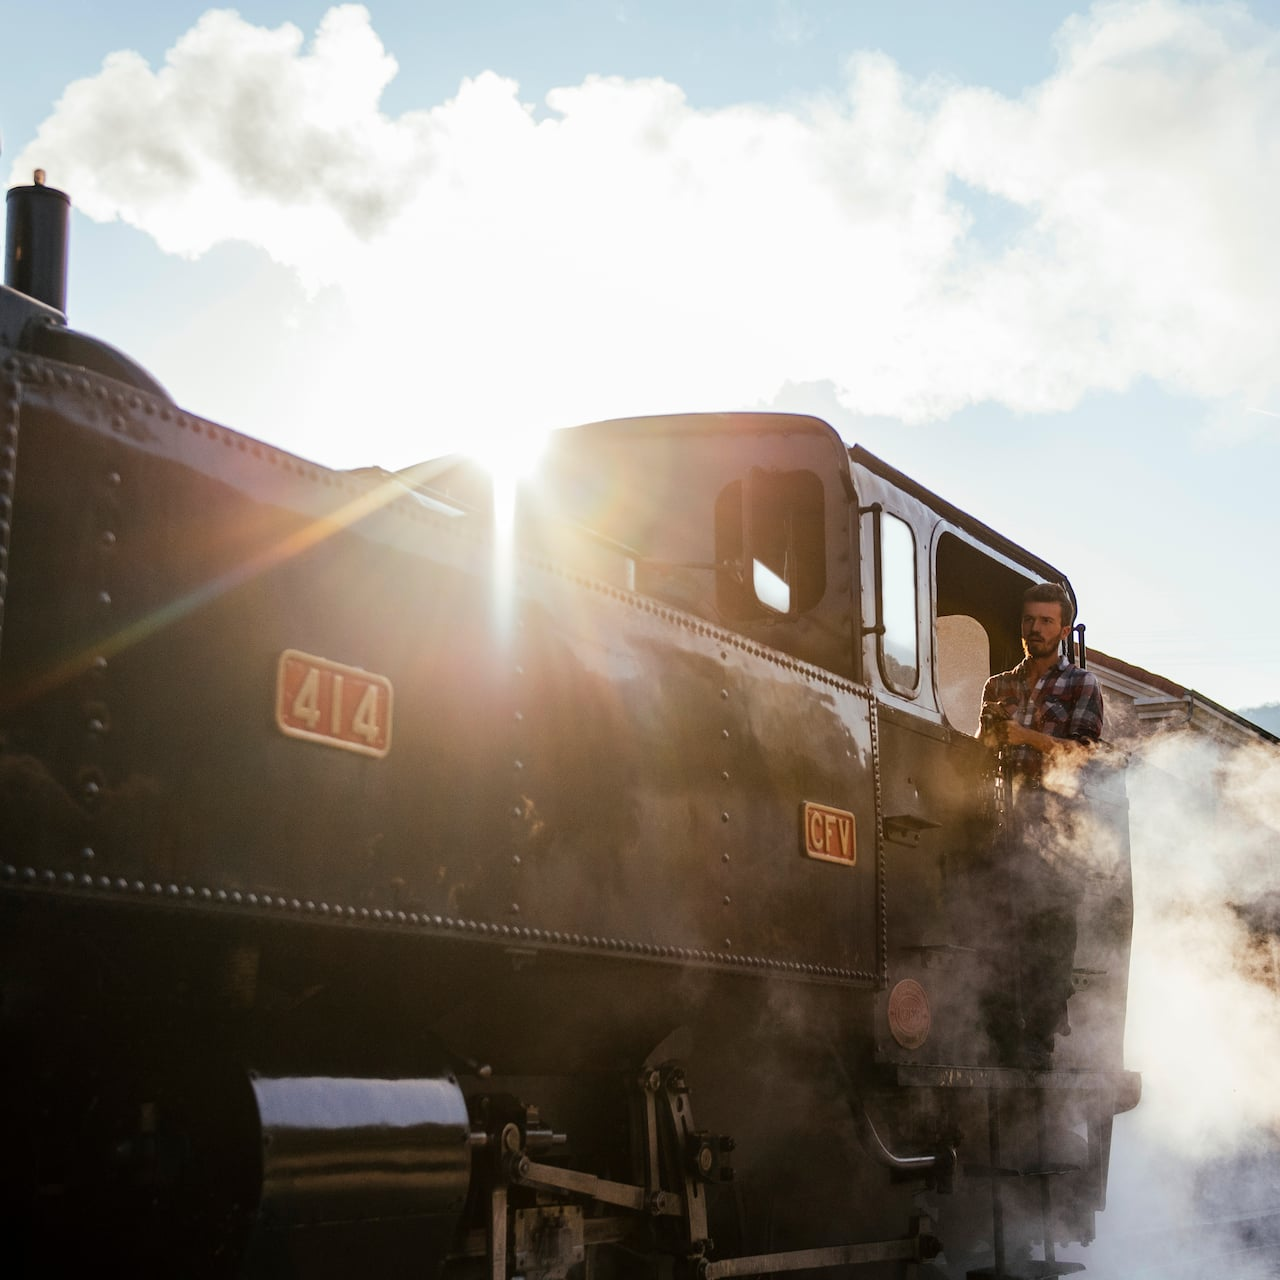 A conductor drives a steam engine train